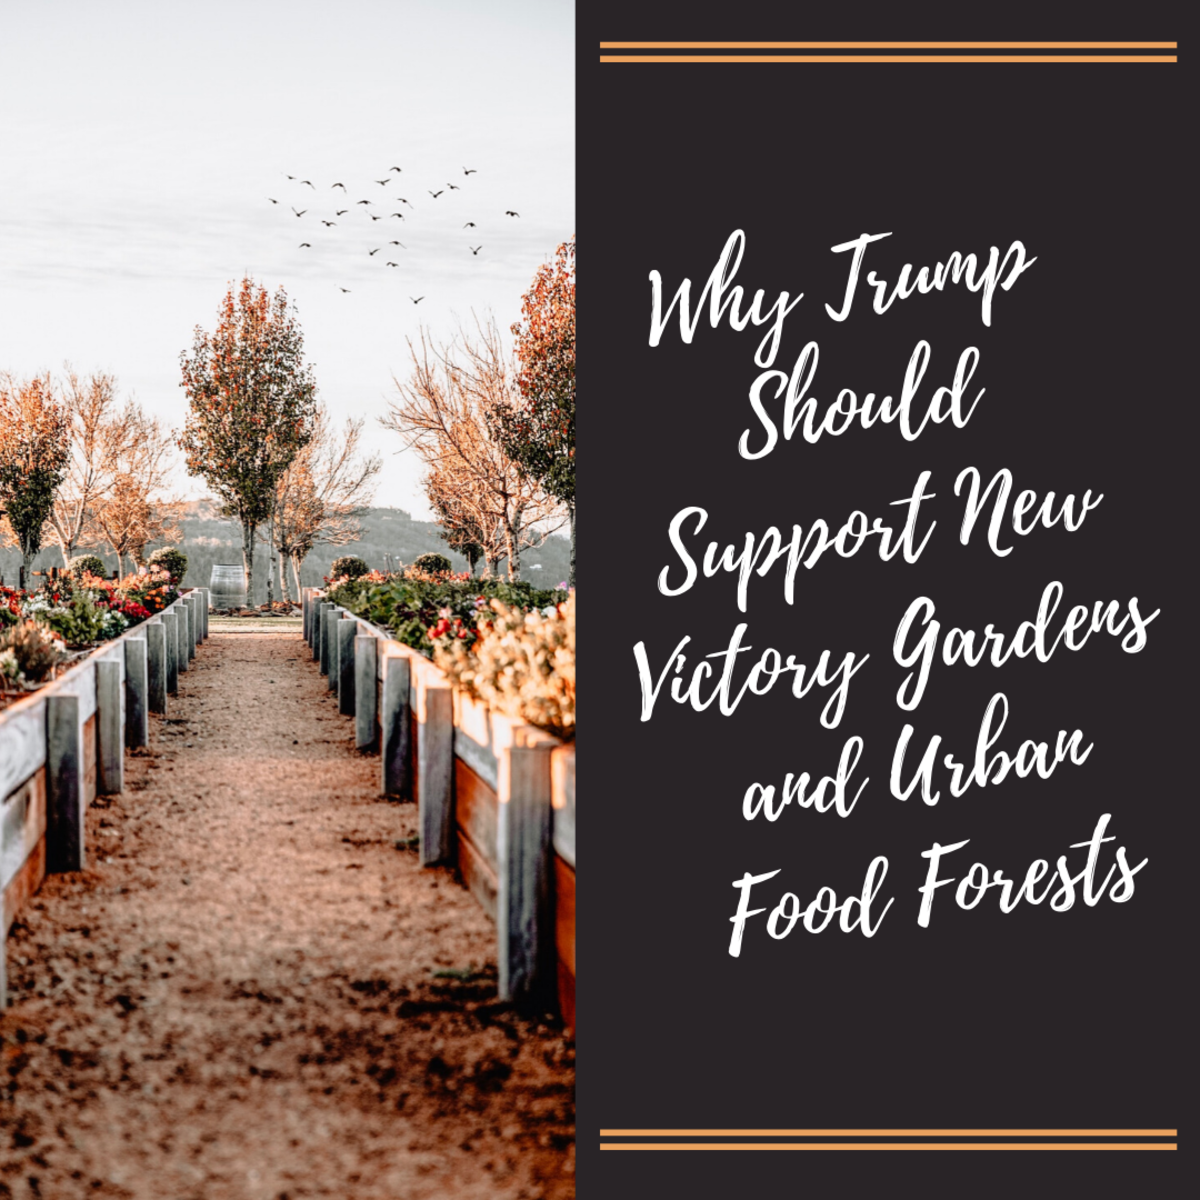 Due to a potential food crisis, President Trump should support efforts to promote and fund community gardens.